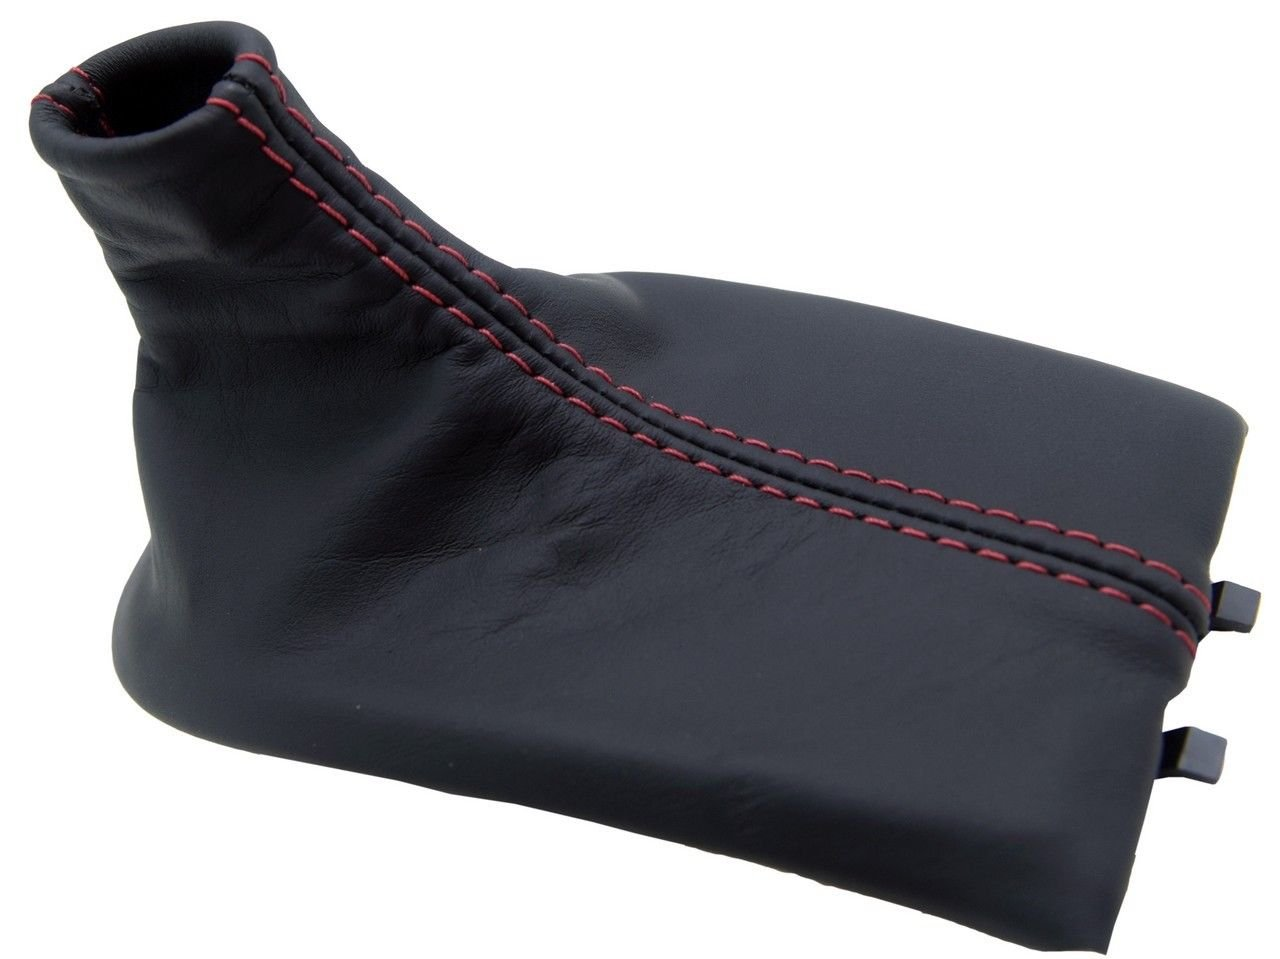 Autoguru Manual Shift Boot Synthetic Leather Black, Red Stitch Made for Porsche Boxster, 911, 996, 986 97-04